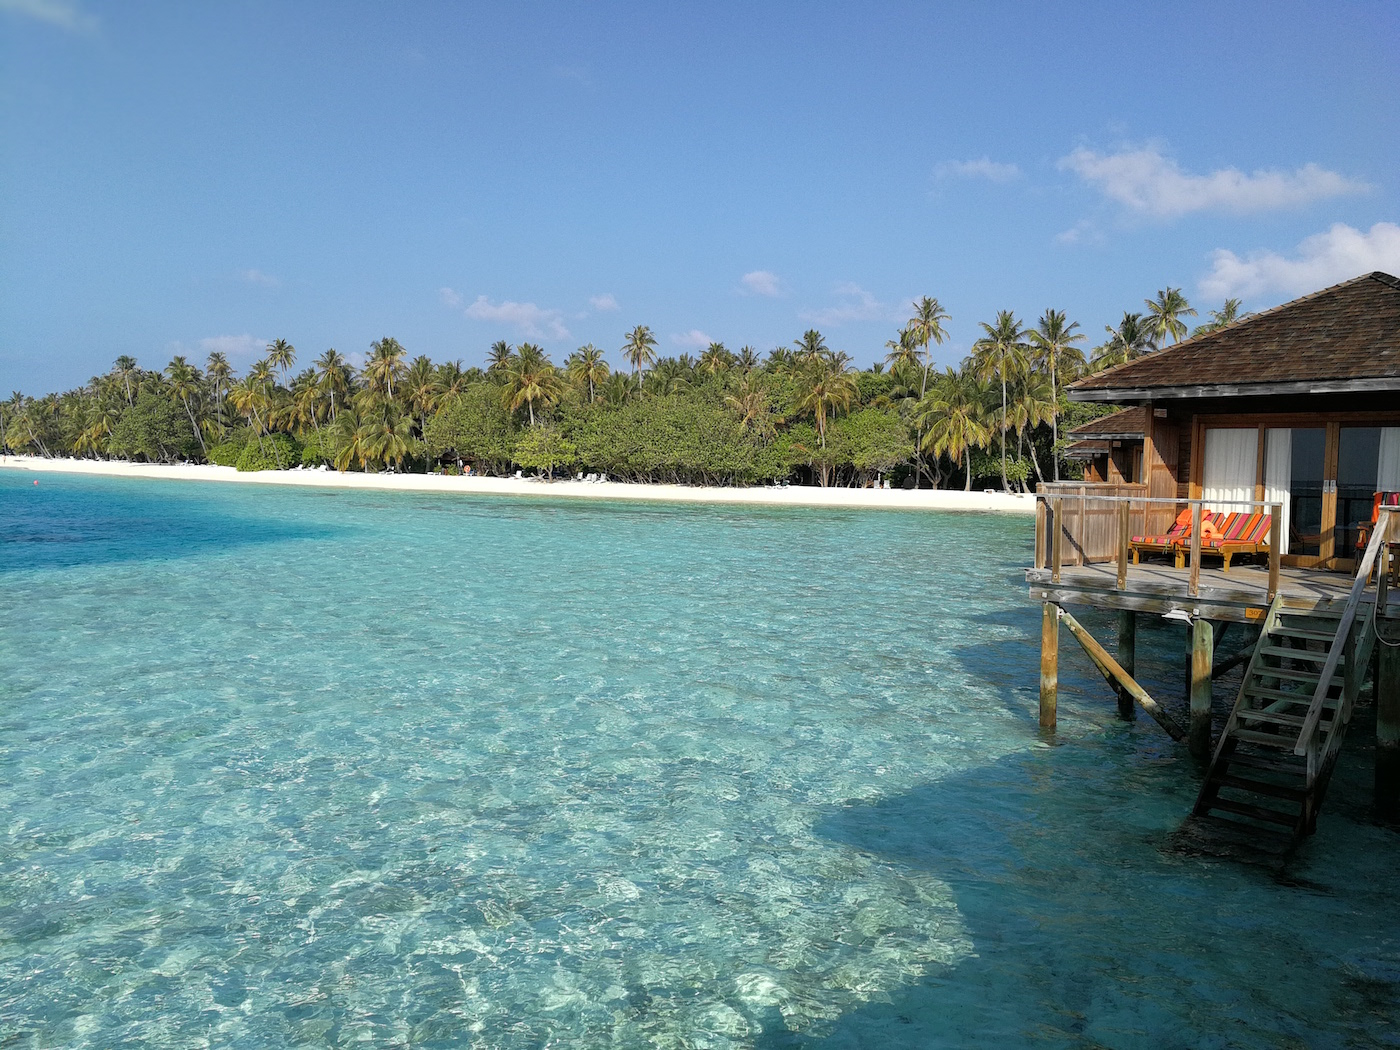 Meeru Clear waters and white sandy beaches